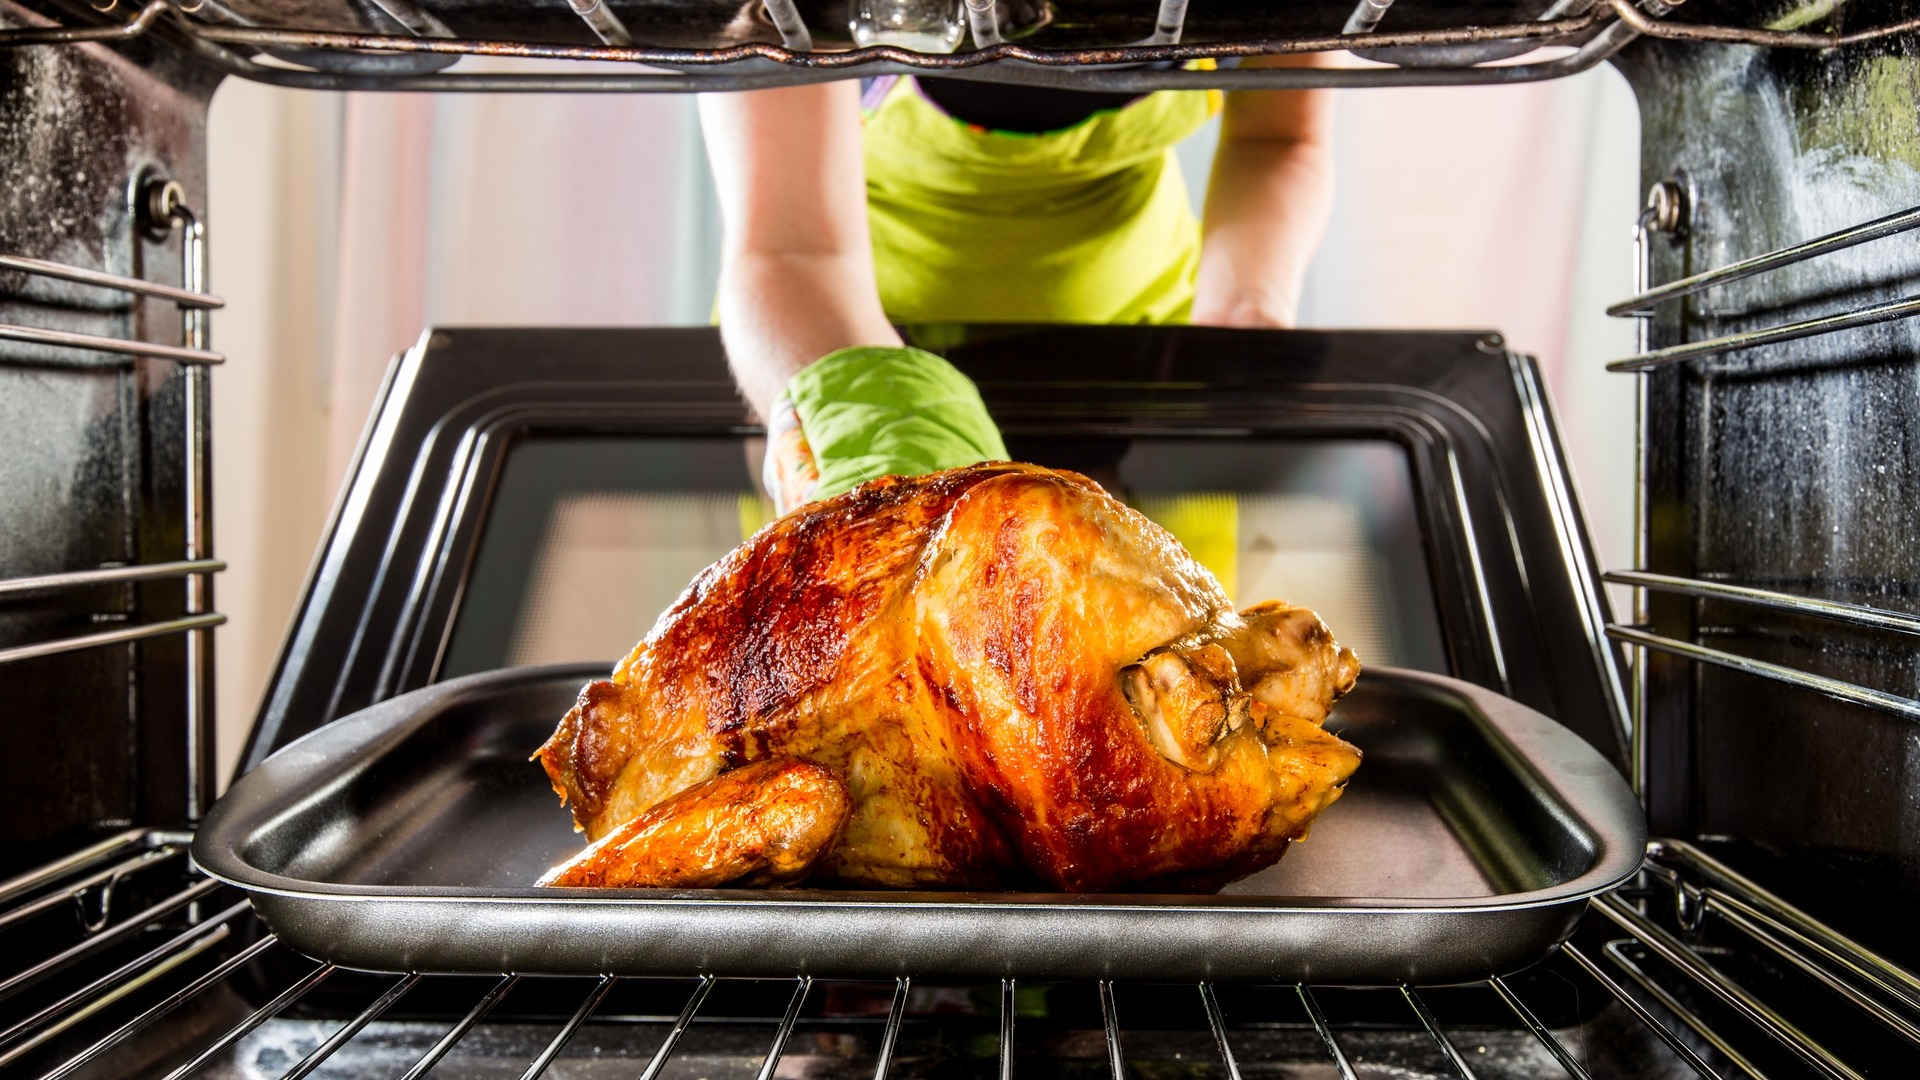 Turkey roasting inside an oven